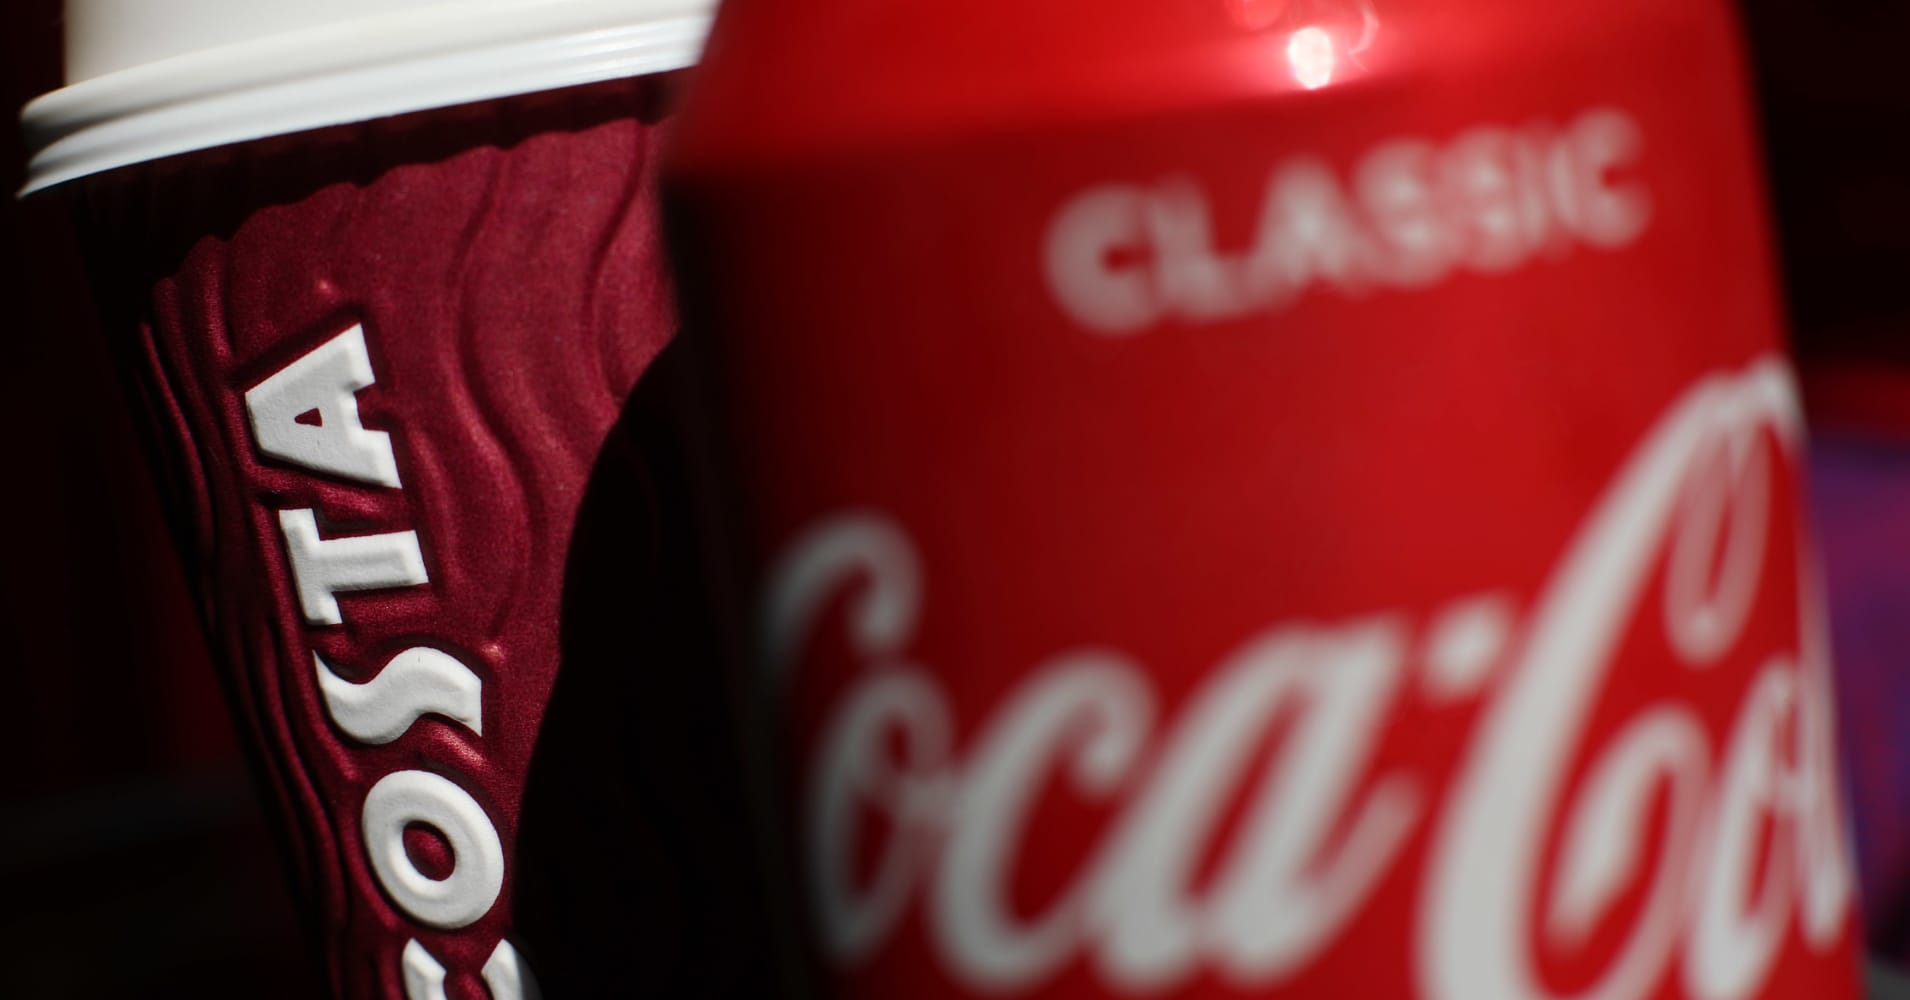 Coca-Cola is making a big push into coffee